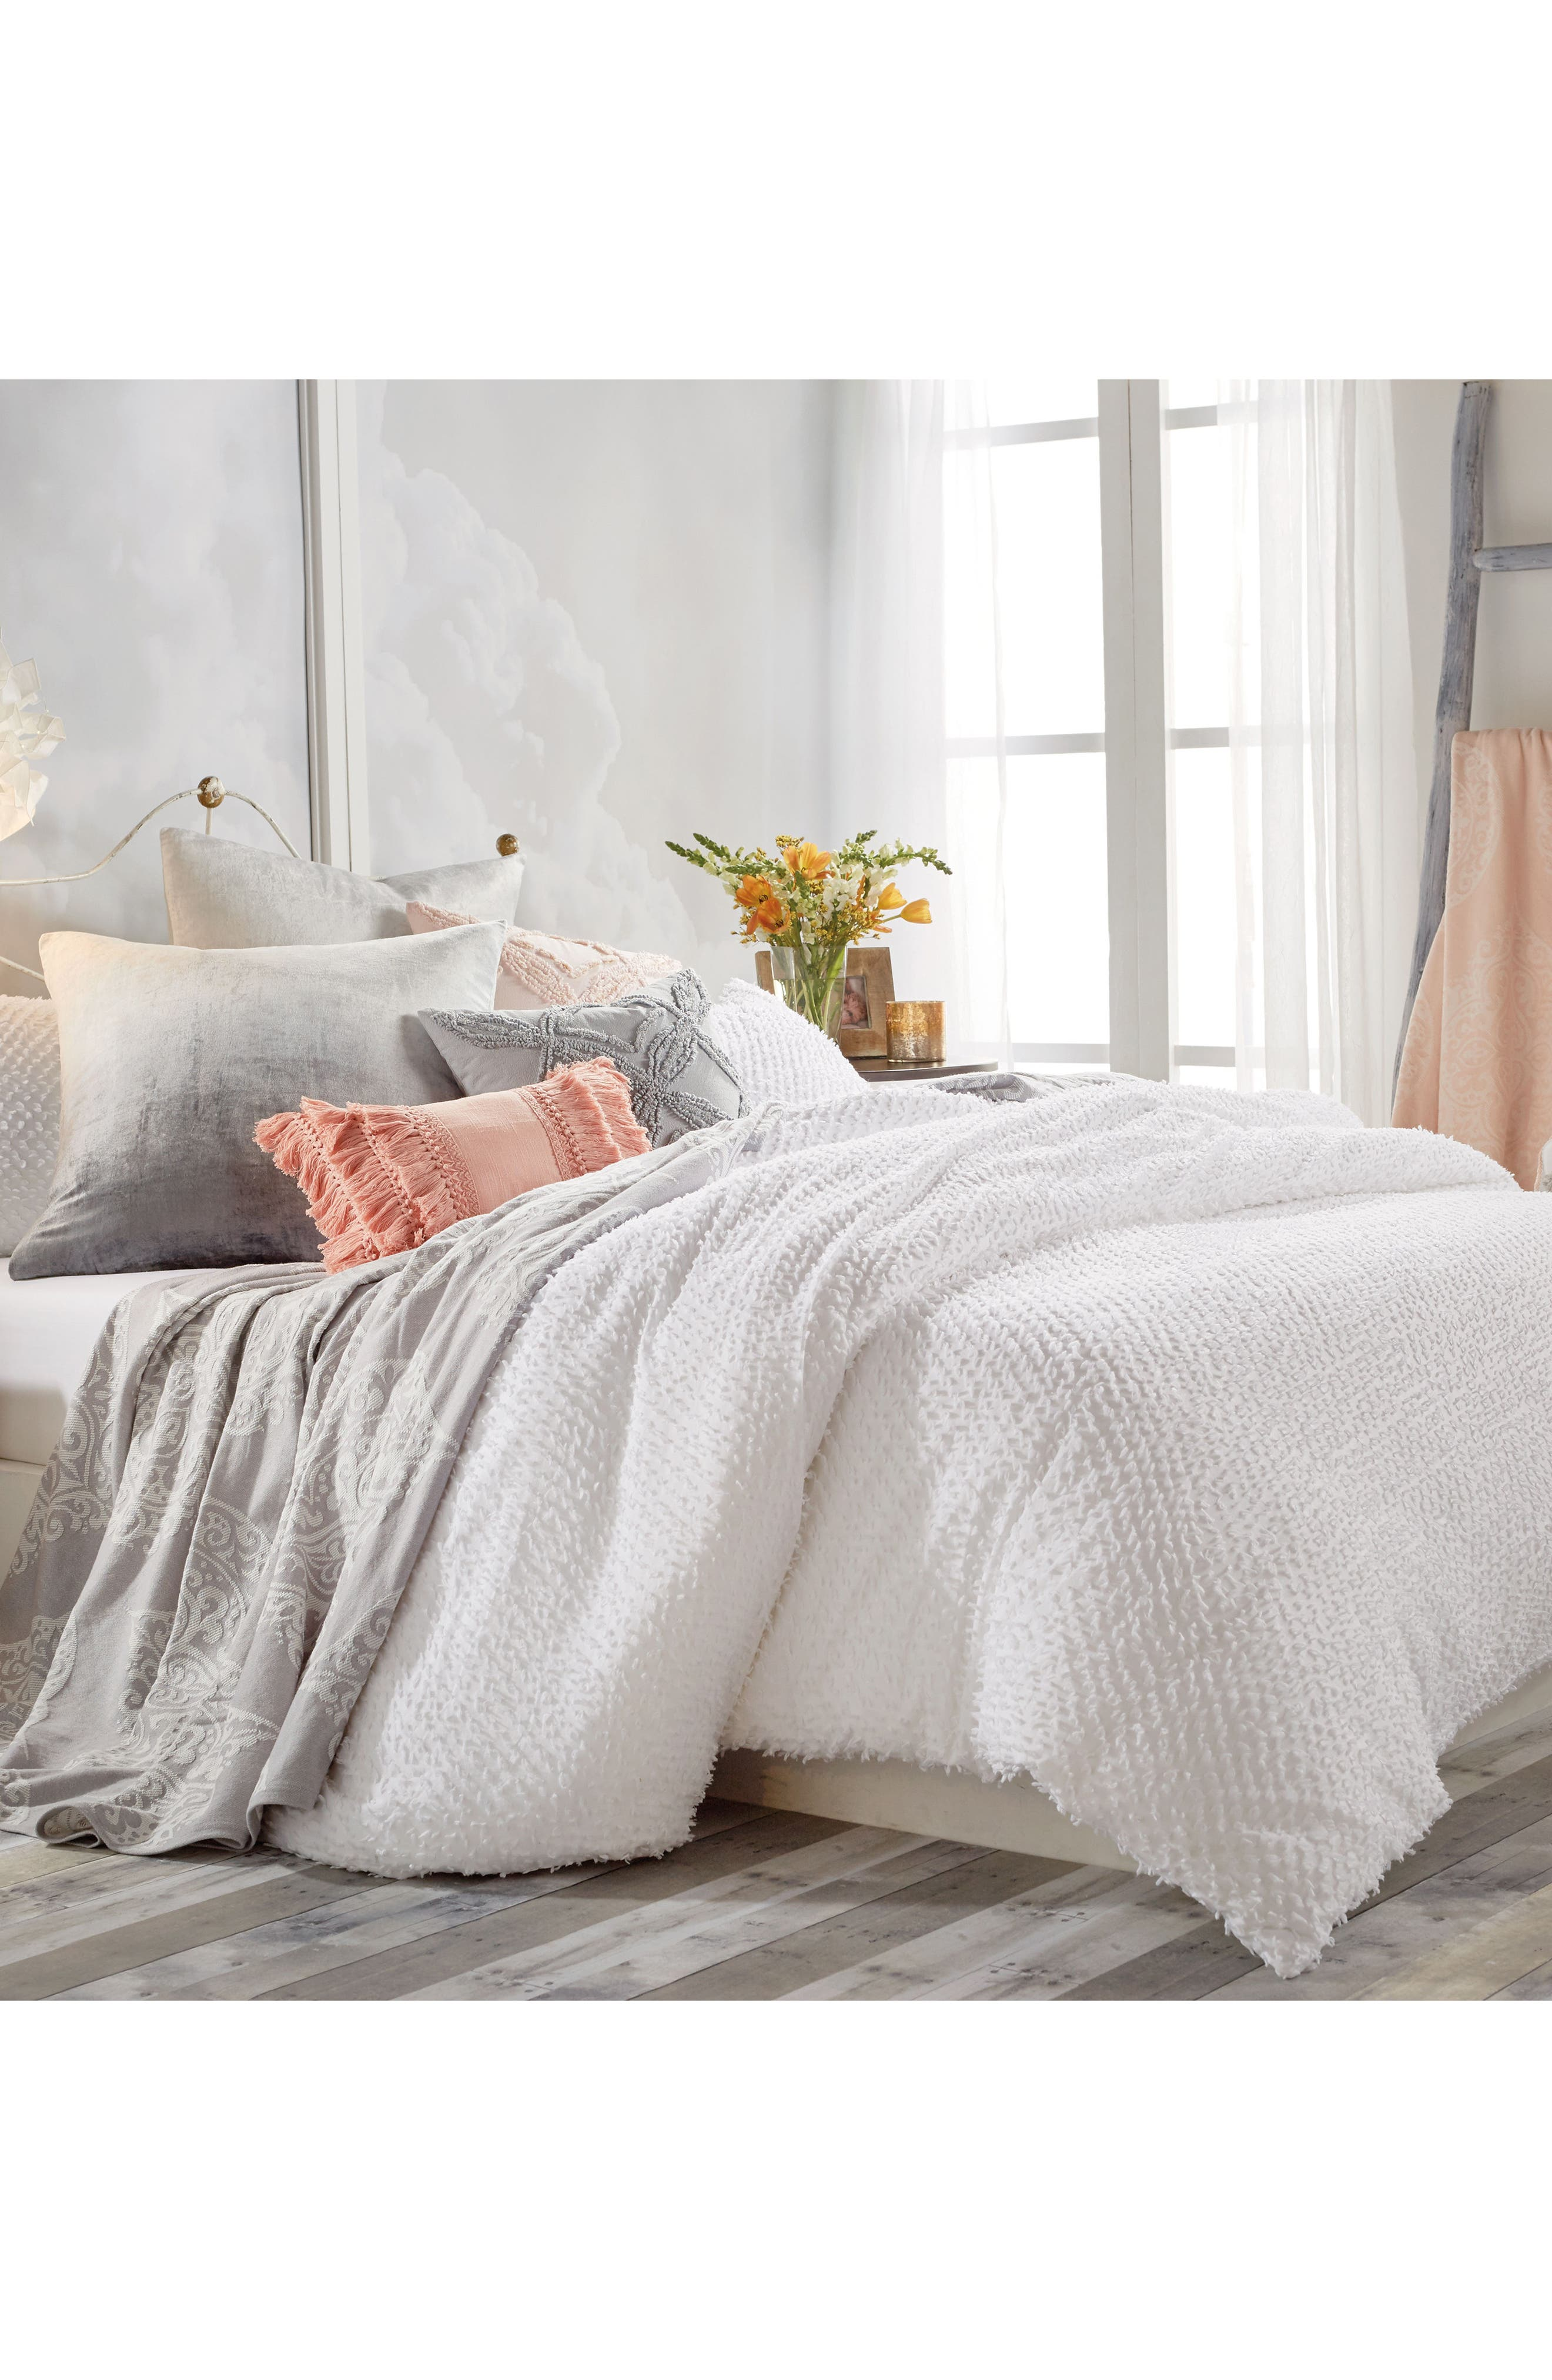 Dot Fringe Comforter & Sham Set,                             Alternate thumbnail 3, color,                             White